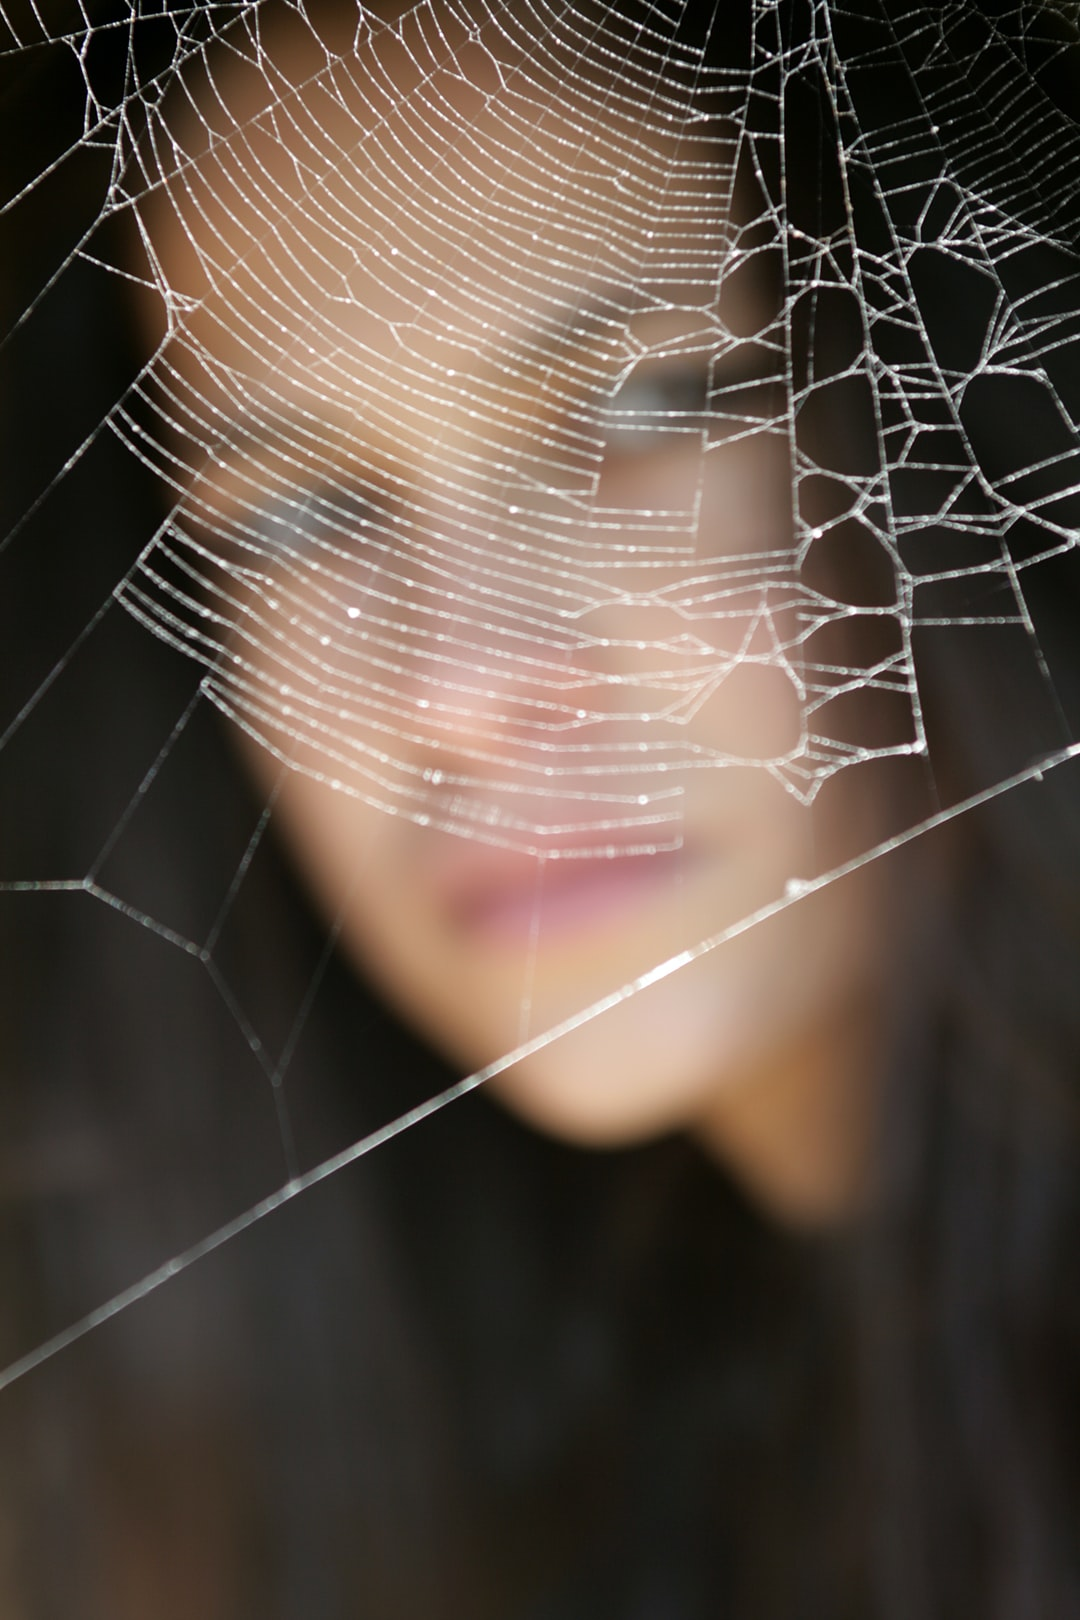 spider web and woman